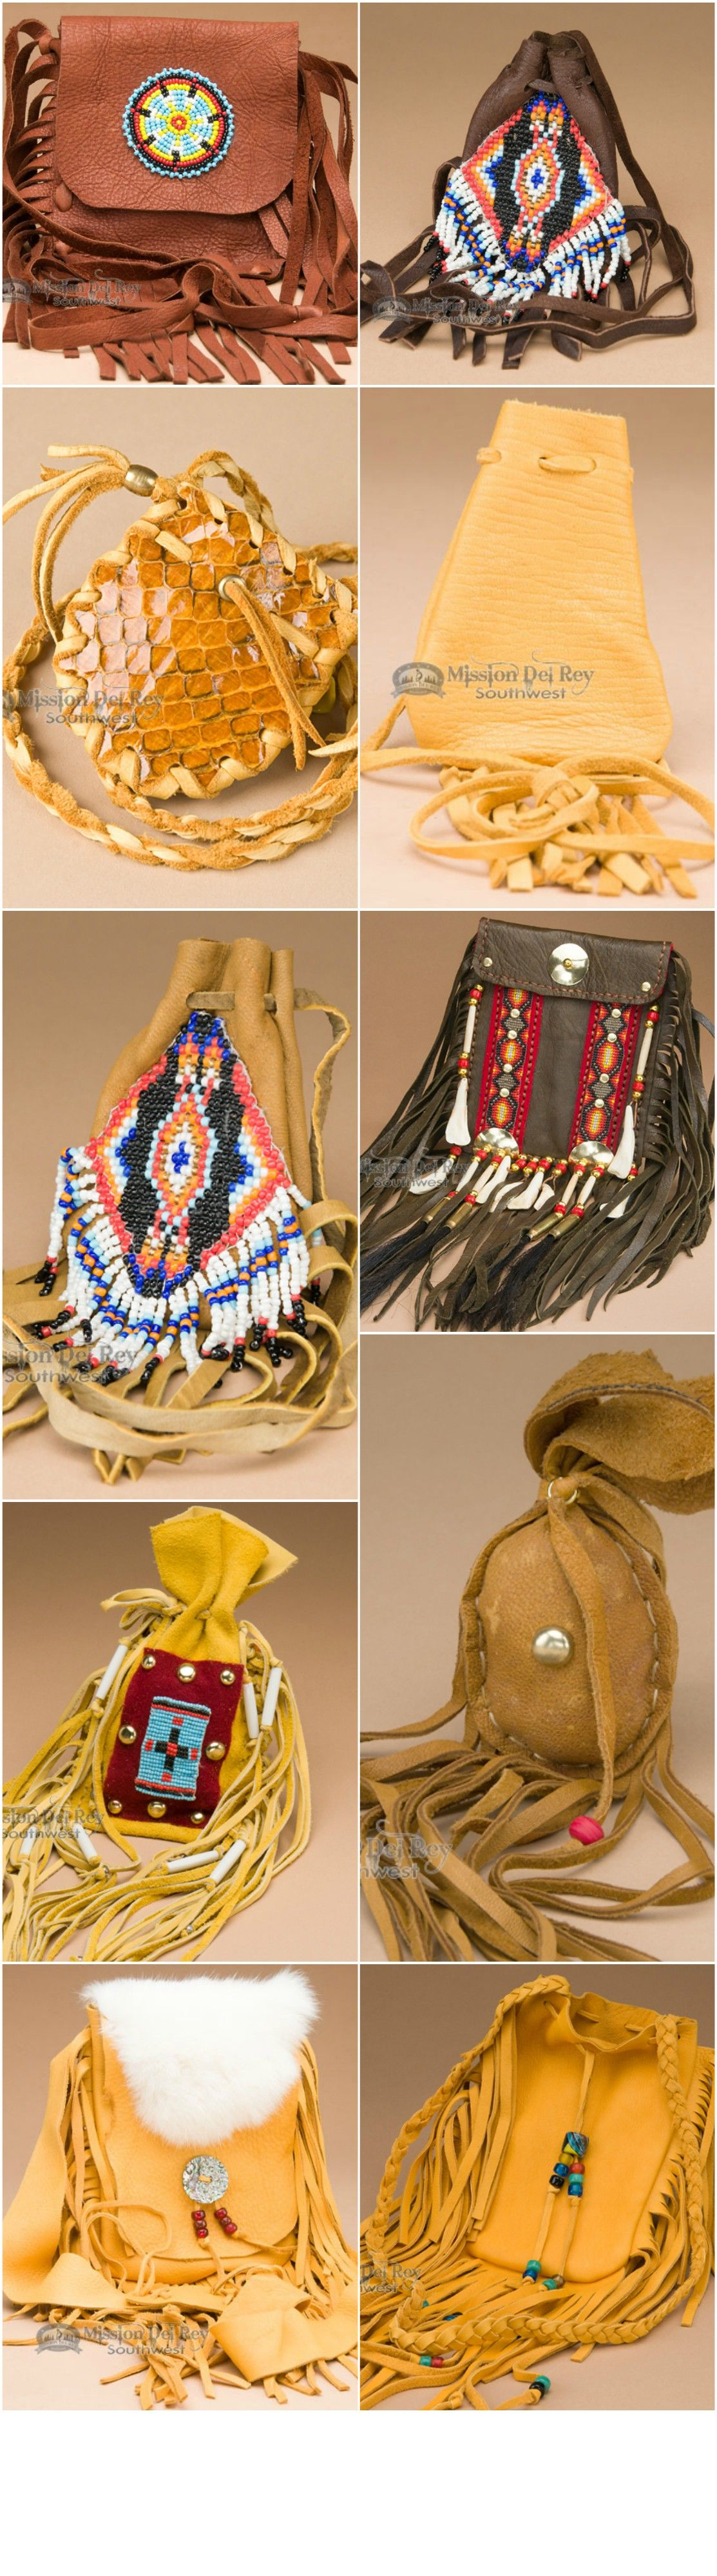 Some Medicine Bags Are Simple Pouches While Others Have A